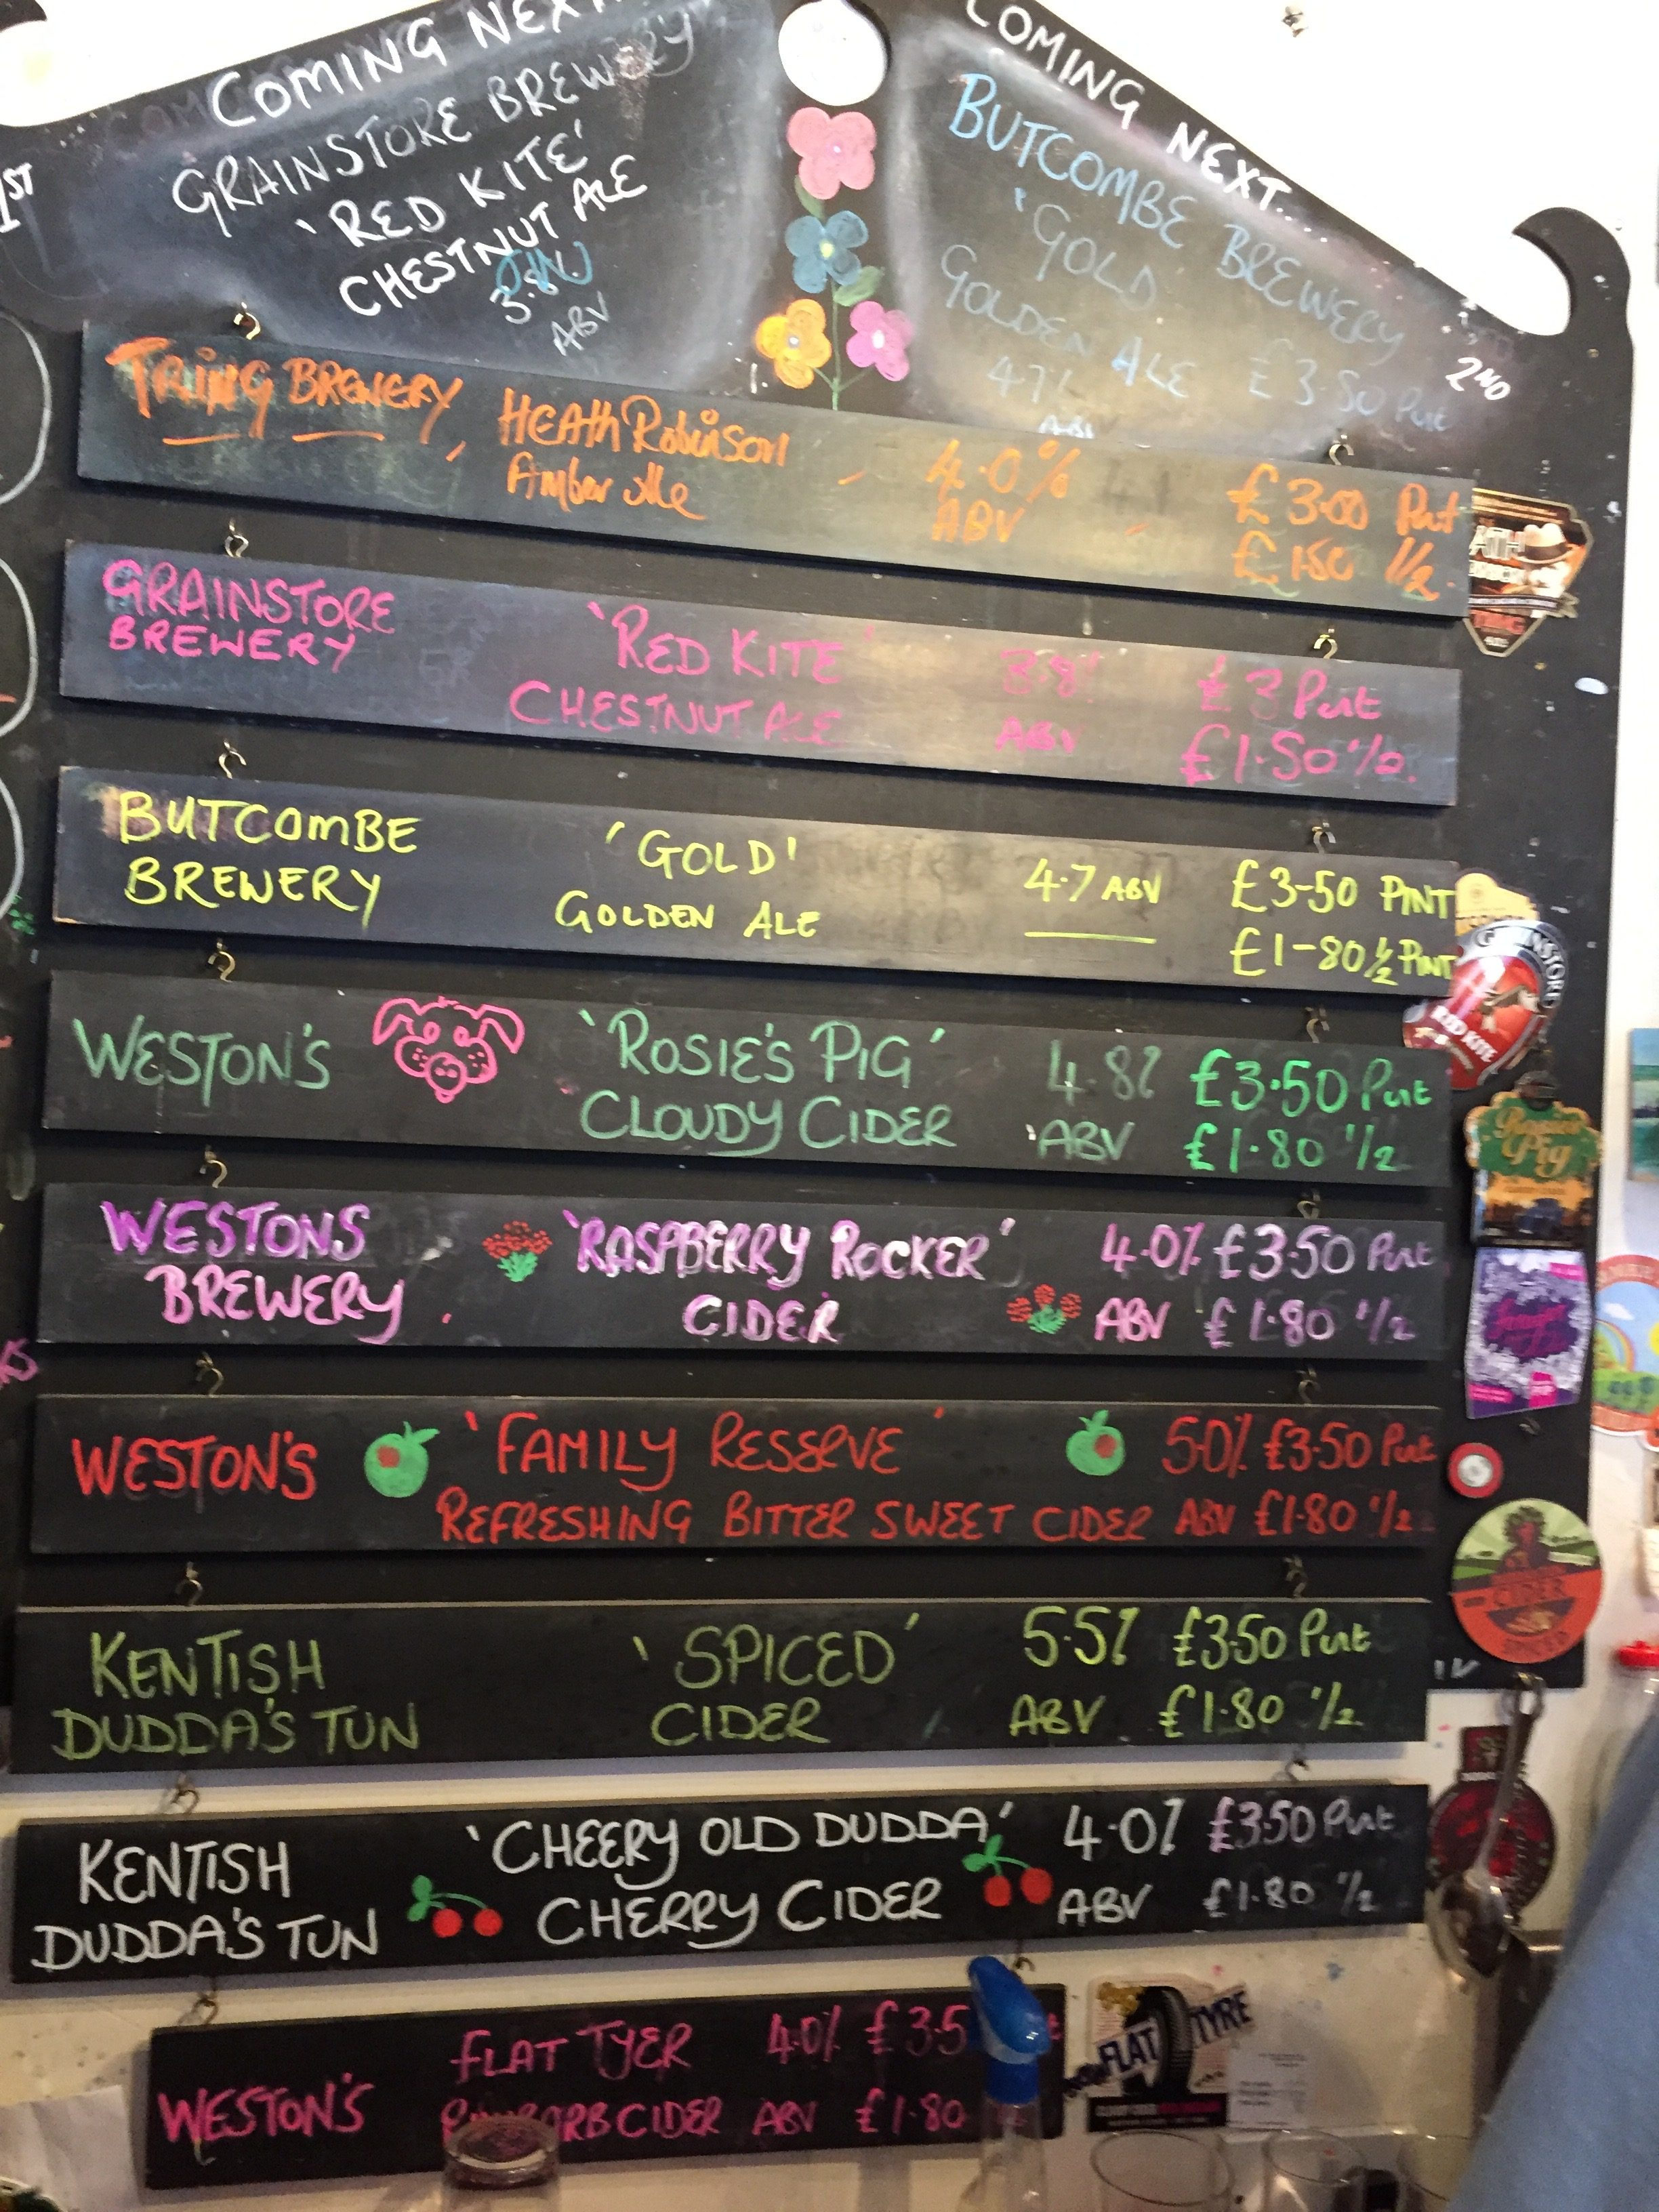 The Ale & Cider Board